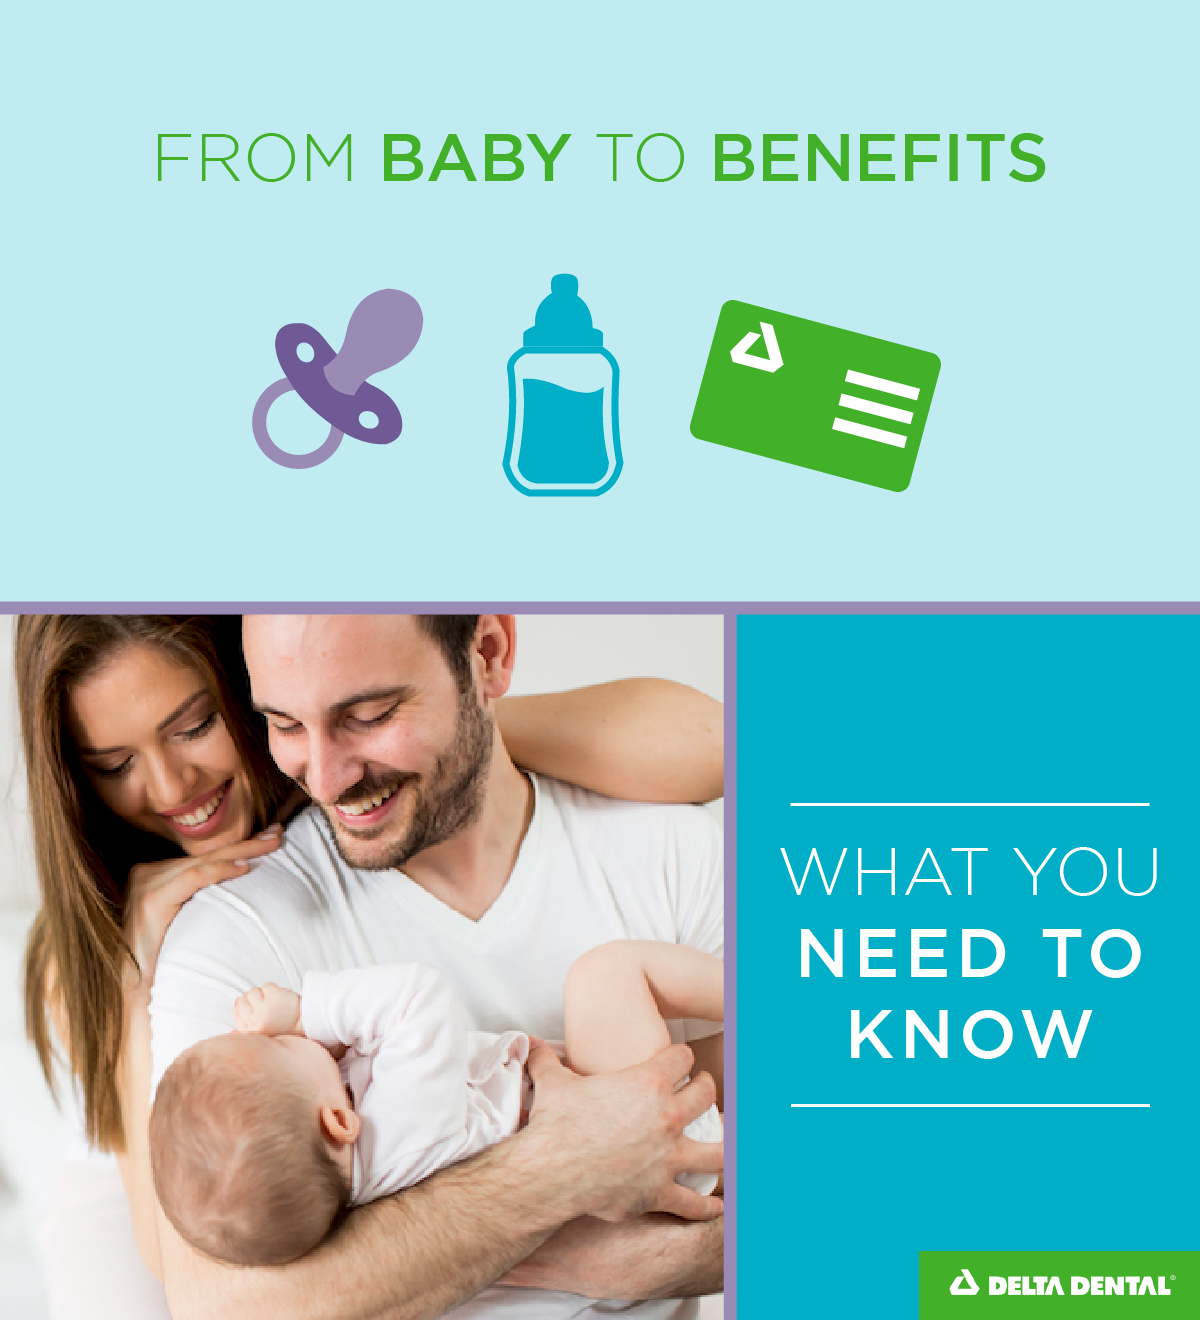 Tips for Adding Your Newborn to Insurance (With images